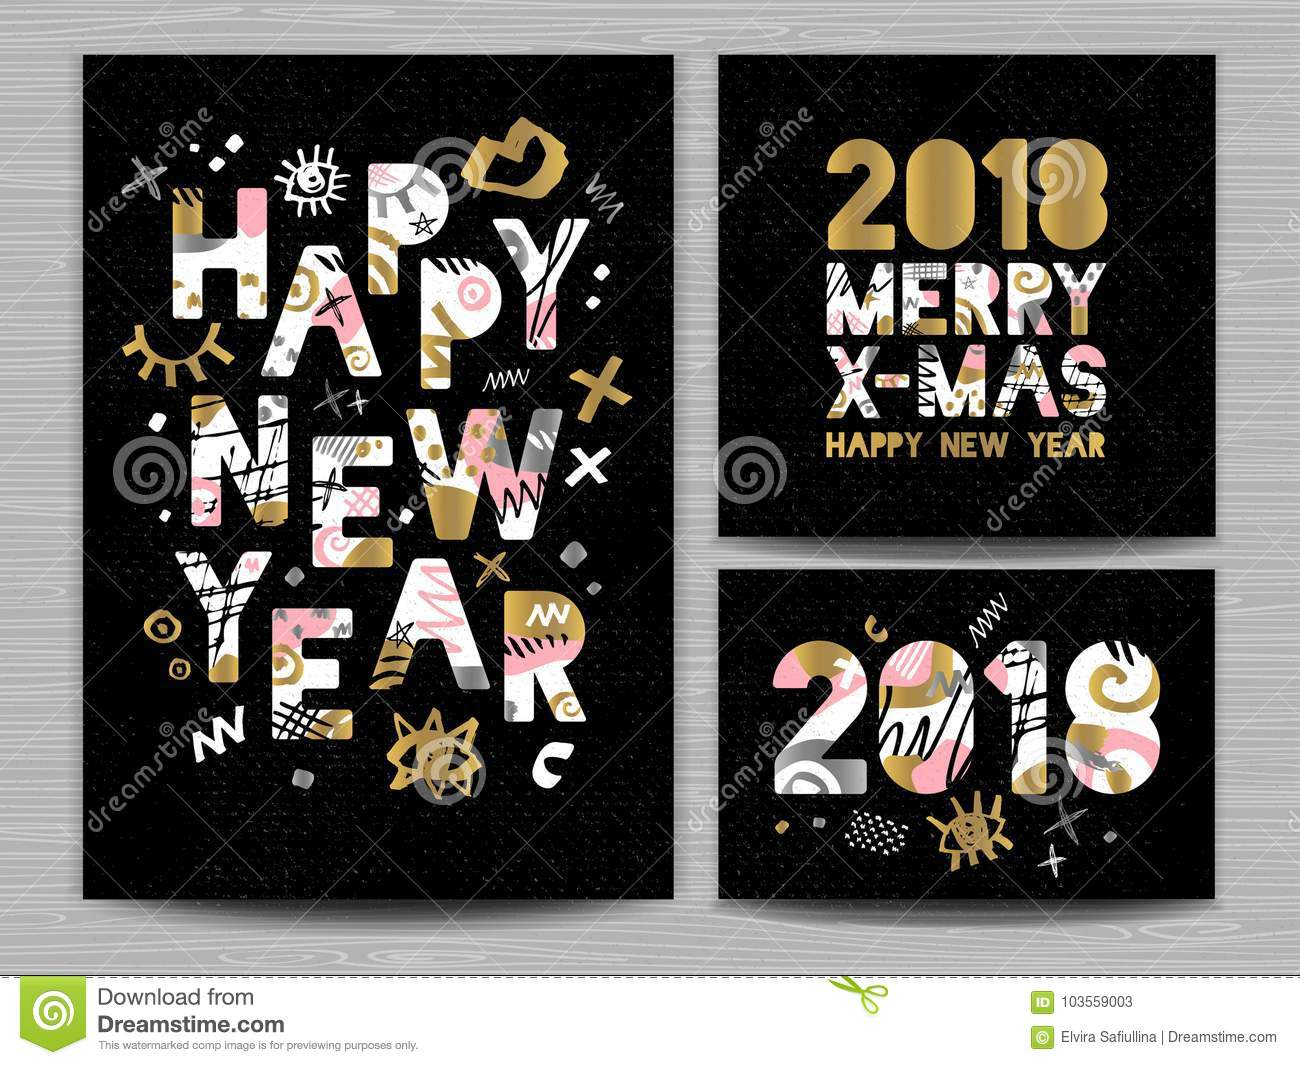 happy new year merry x mas lettering greeting card drawn vector elements black background gold silver pink black art hand drawn vector design